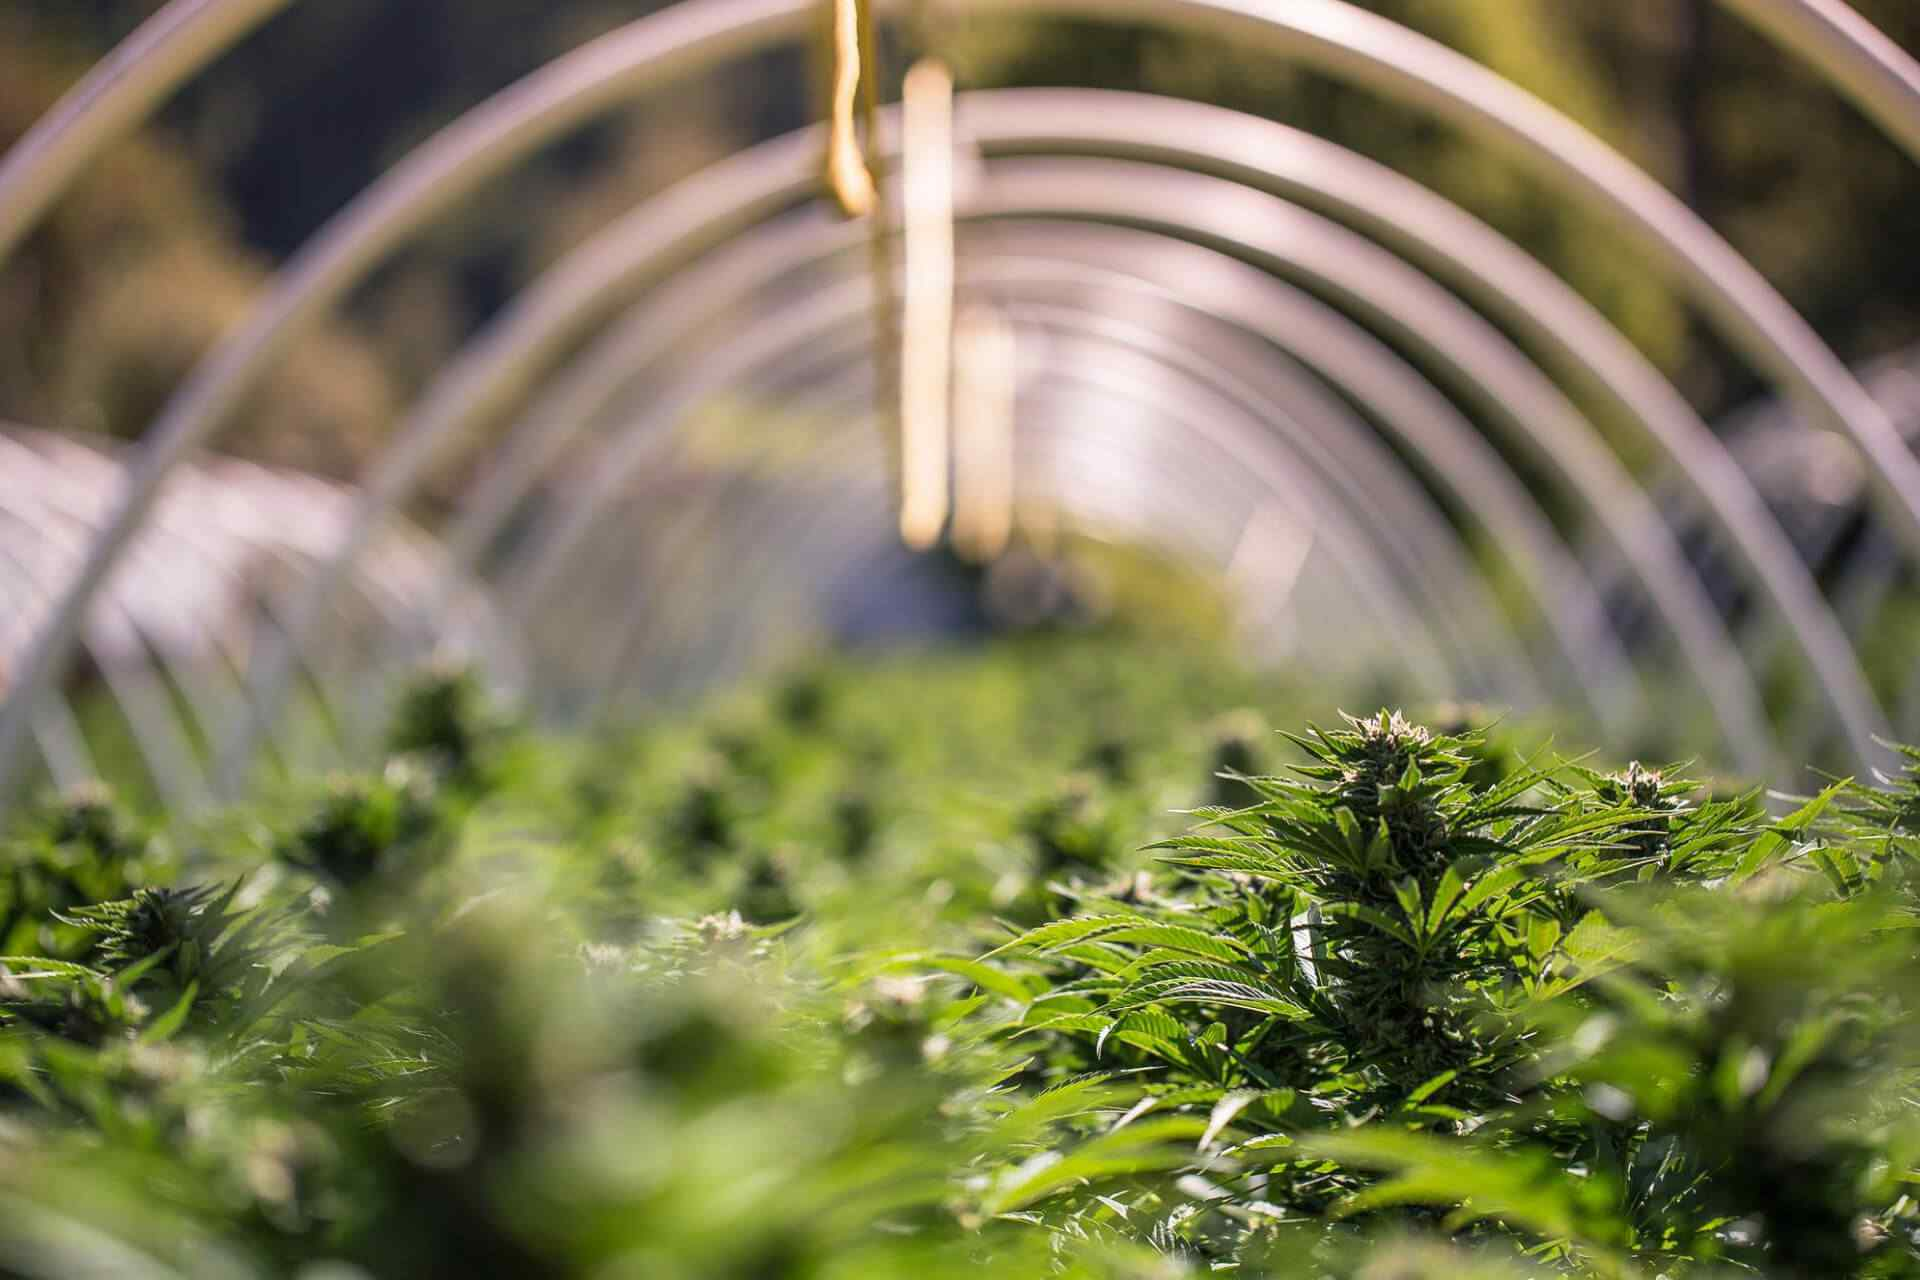 Oklahoma Cannabis Businesses in Limbo Without Banking Regulations